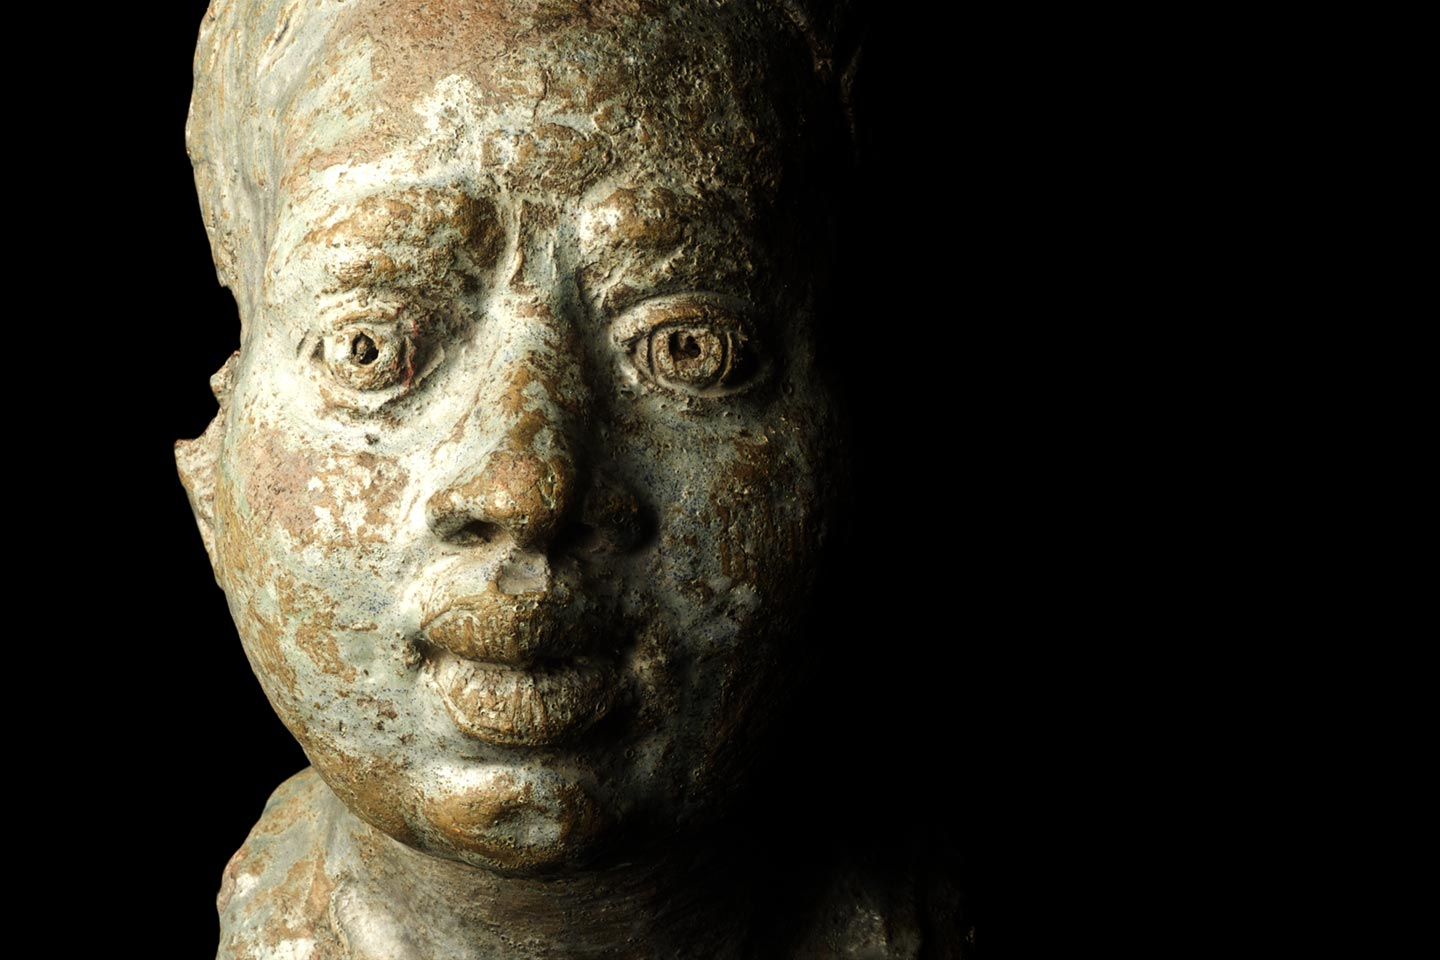 African Woman from Private Collection, Medieval Art, 11th Century